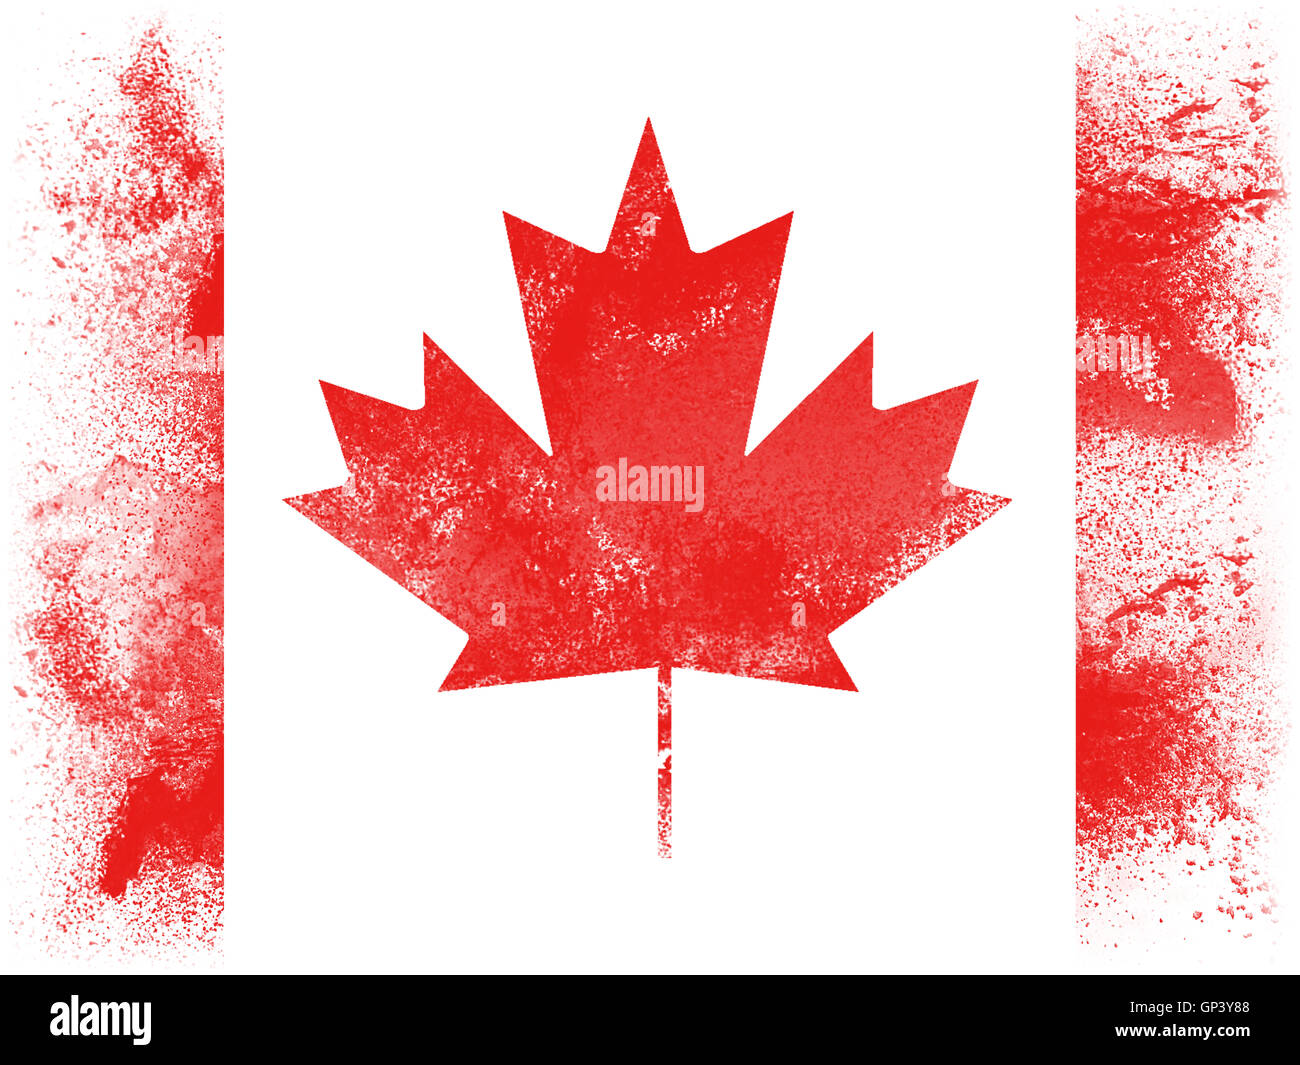 powder paint exploding in colors of canada flag isolated on white